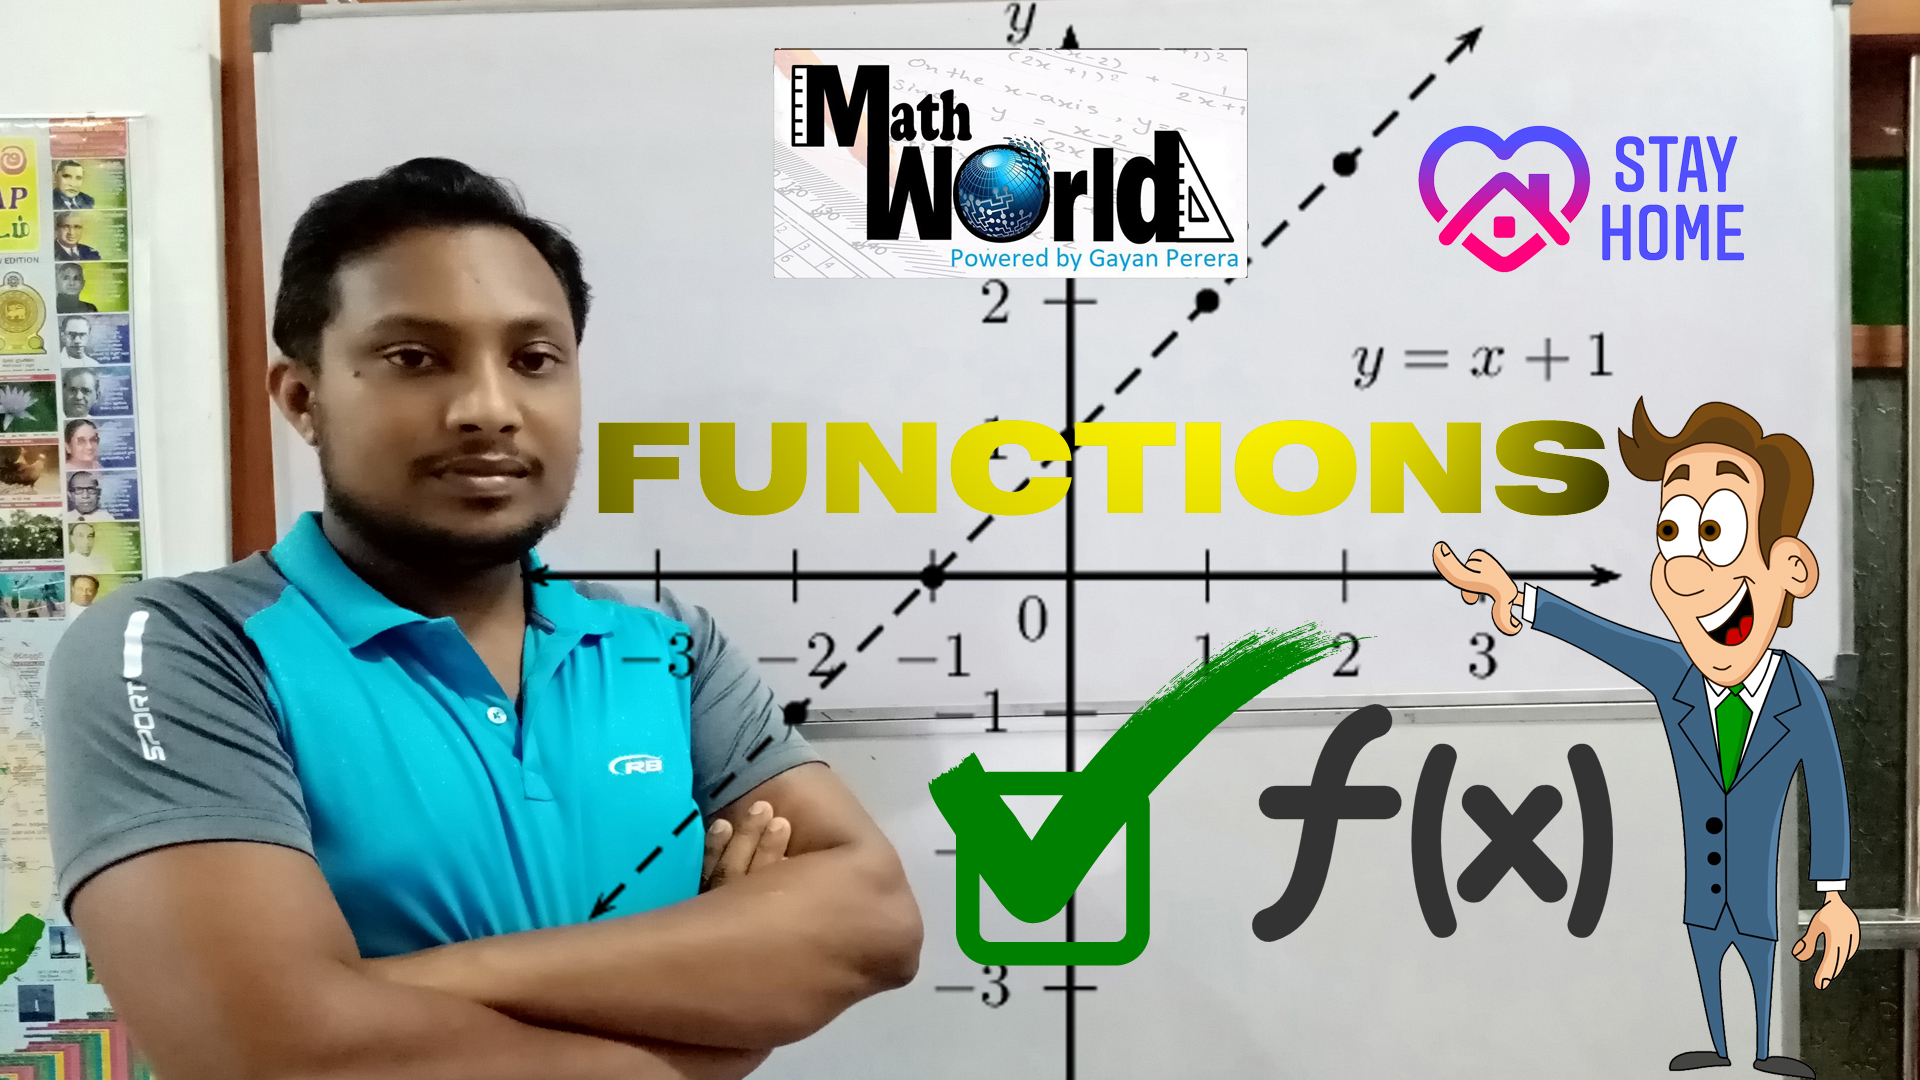 Functions | MathWorld EP 2 | Self Learning tutorial